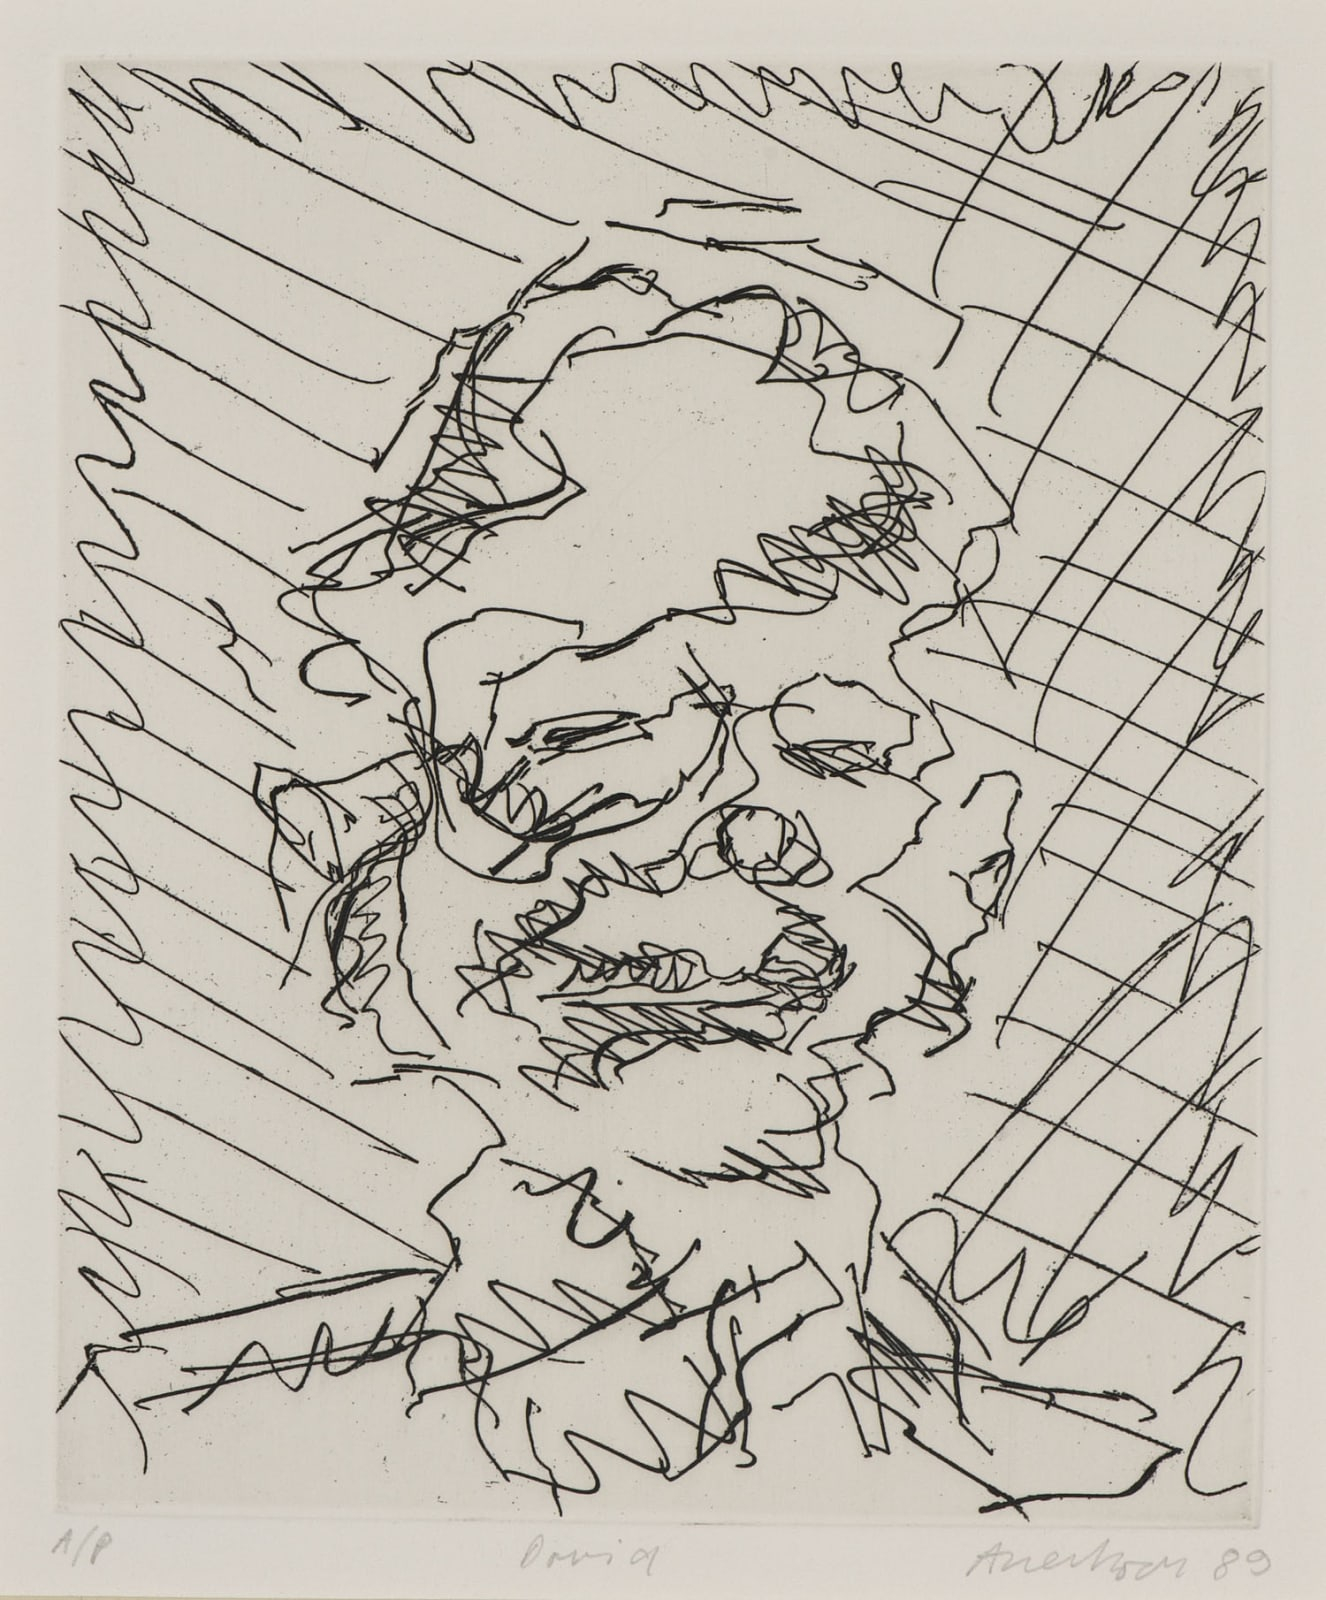 Frank Auerbach (1931-) David 1989 Etching, printed on Somerset white paper Artist's proof outside the published edition of 50 19.3 x 16.3 cm Ben Uri Collection © Frank Auerbach, courtesy of Malborough Fine Art To see and discover more about this artist click here